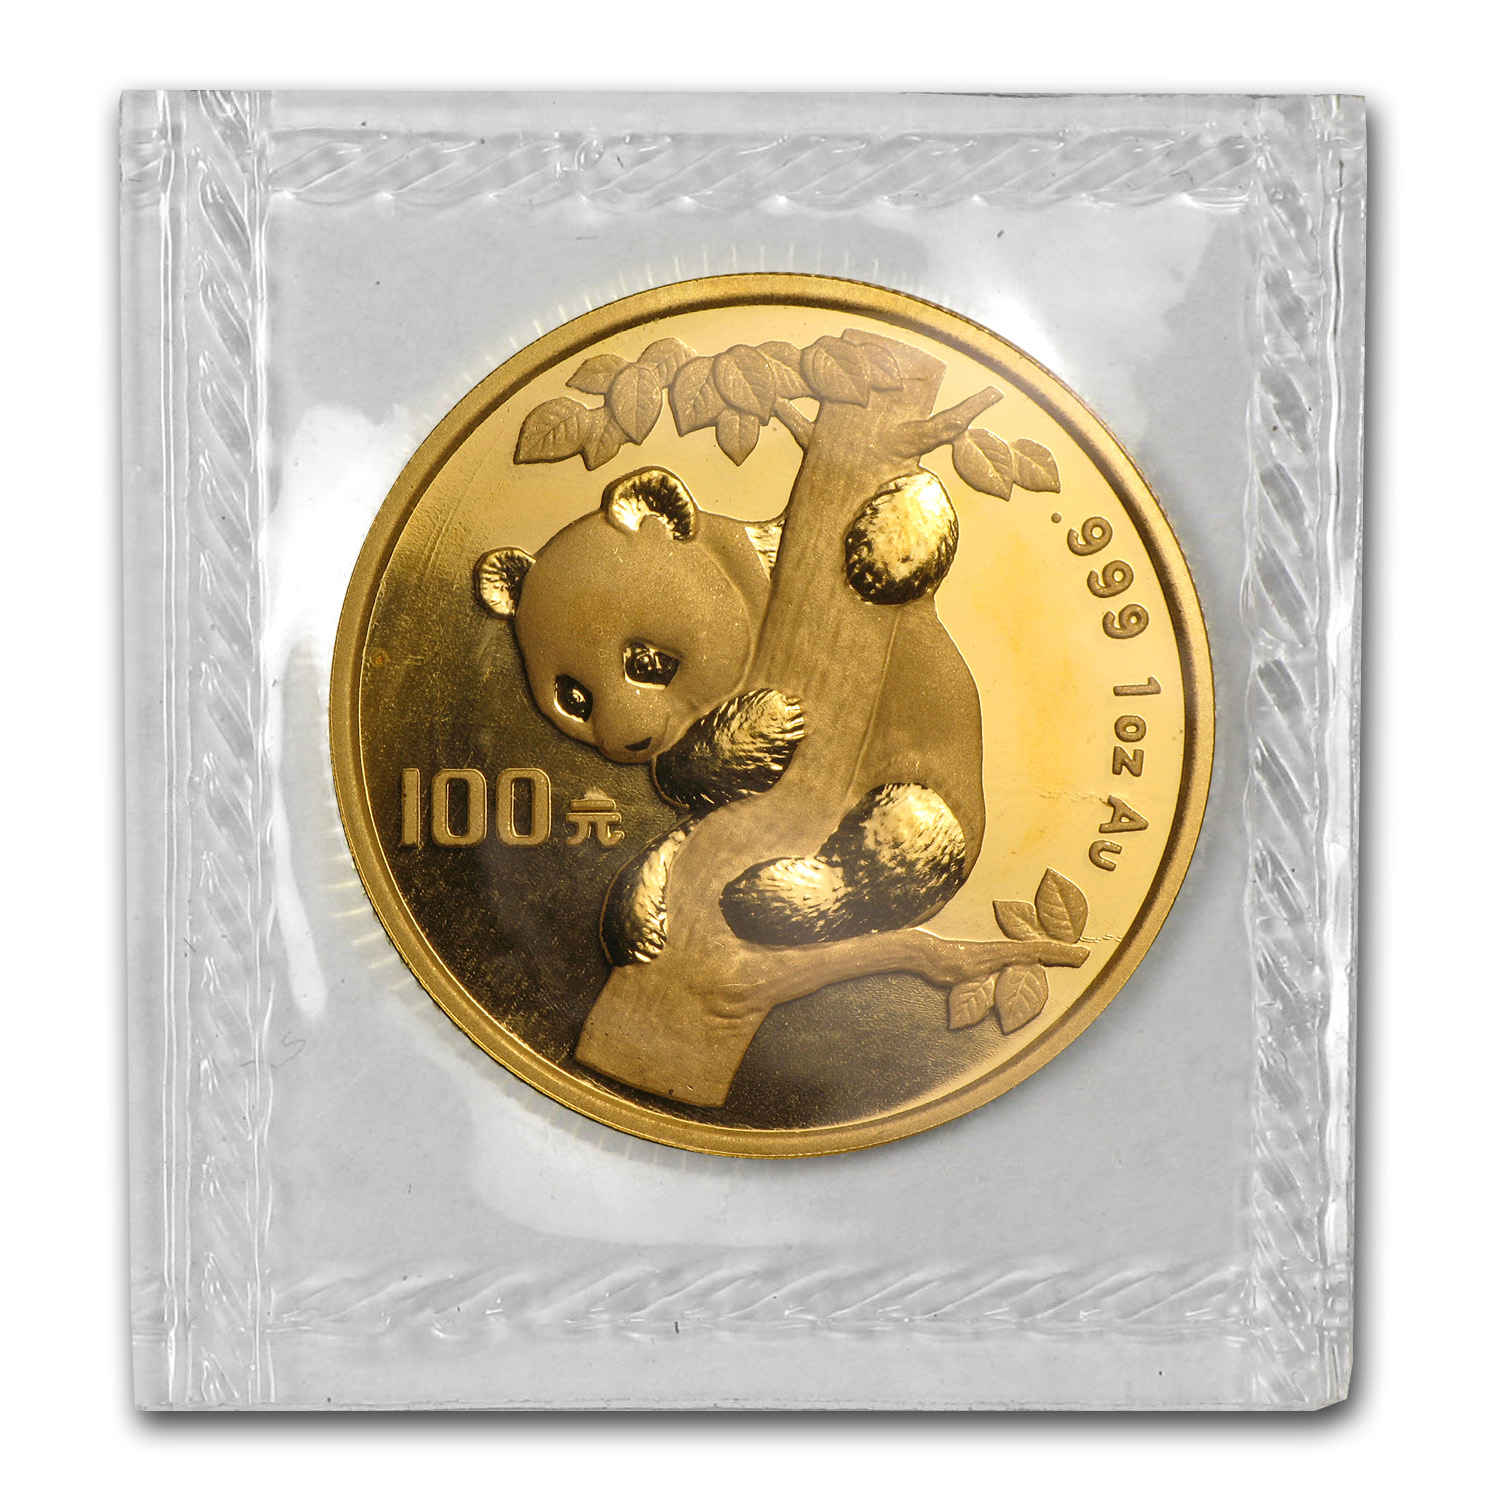 1996 China 1 oz Gold Panda Large Date BU (Sealed)